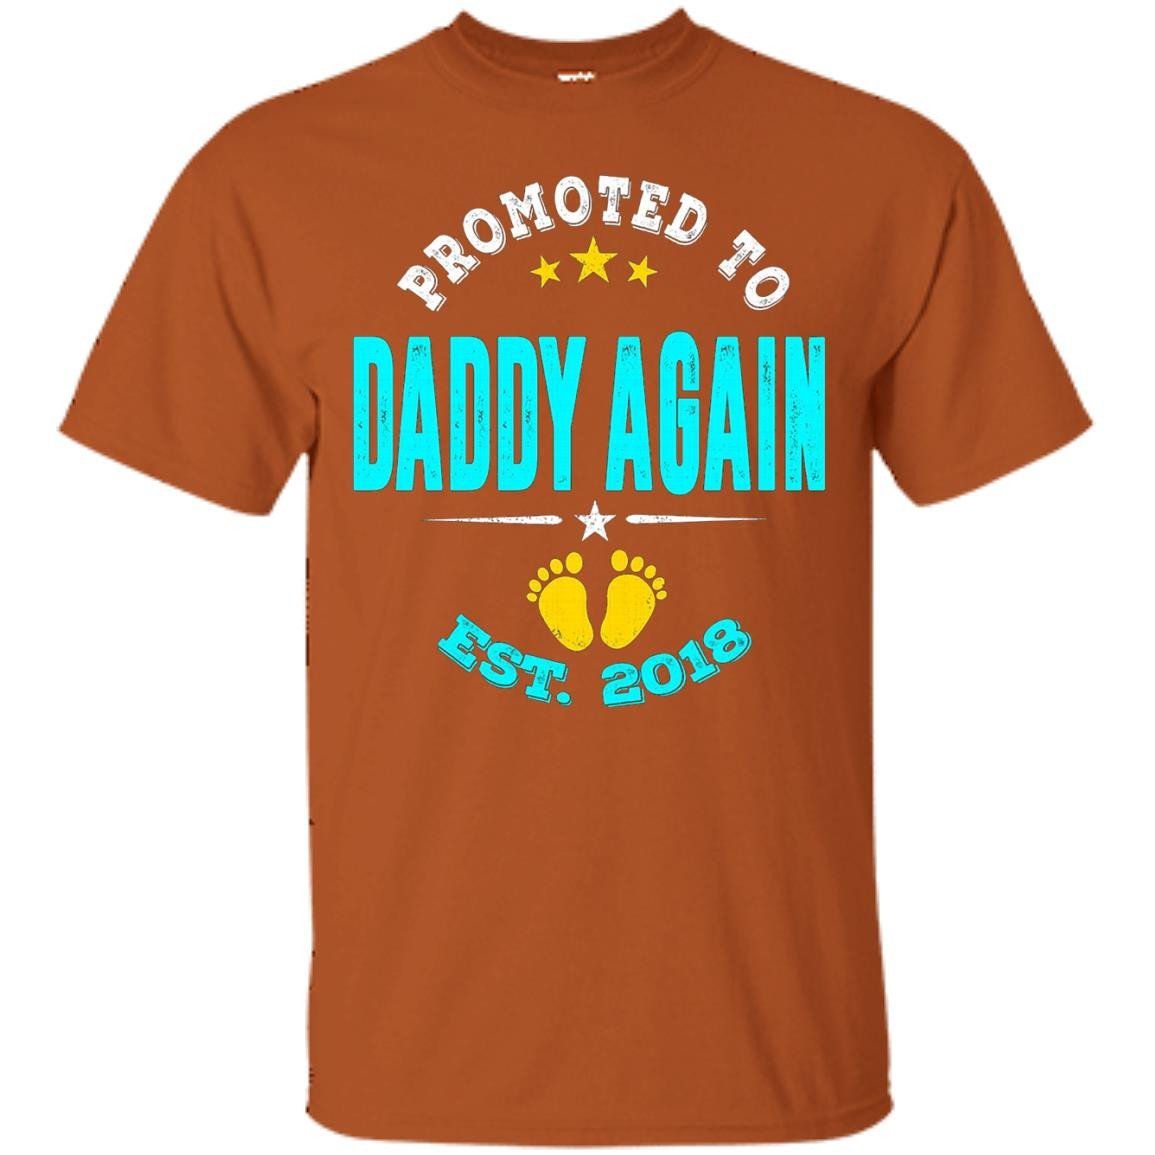 Promoted to Daddy again 2018 Shirt - T-Shirt